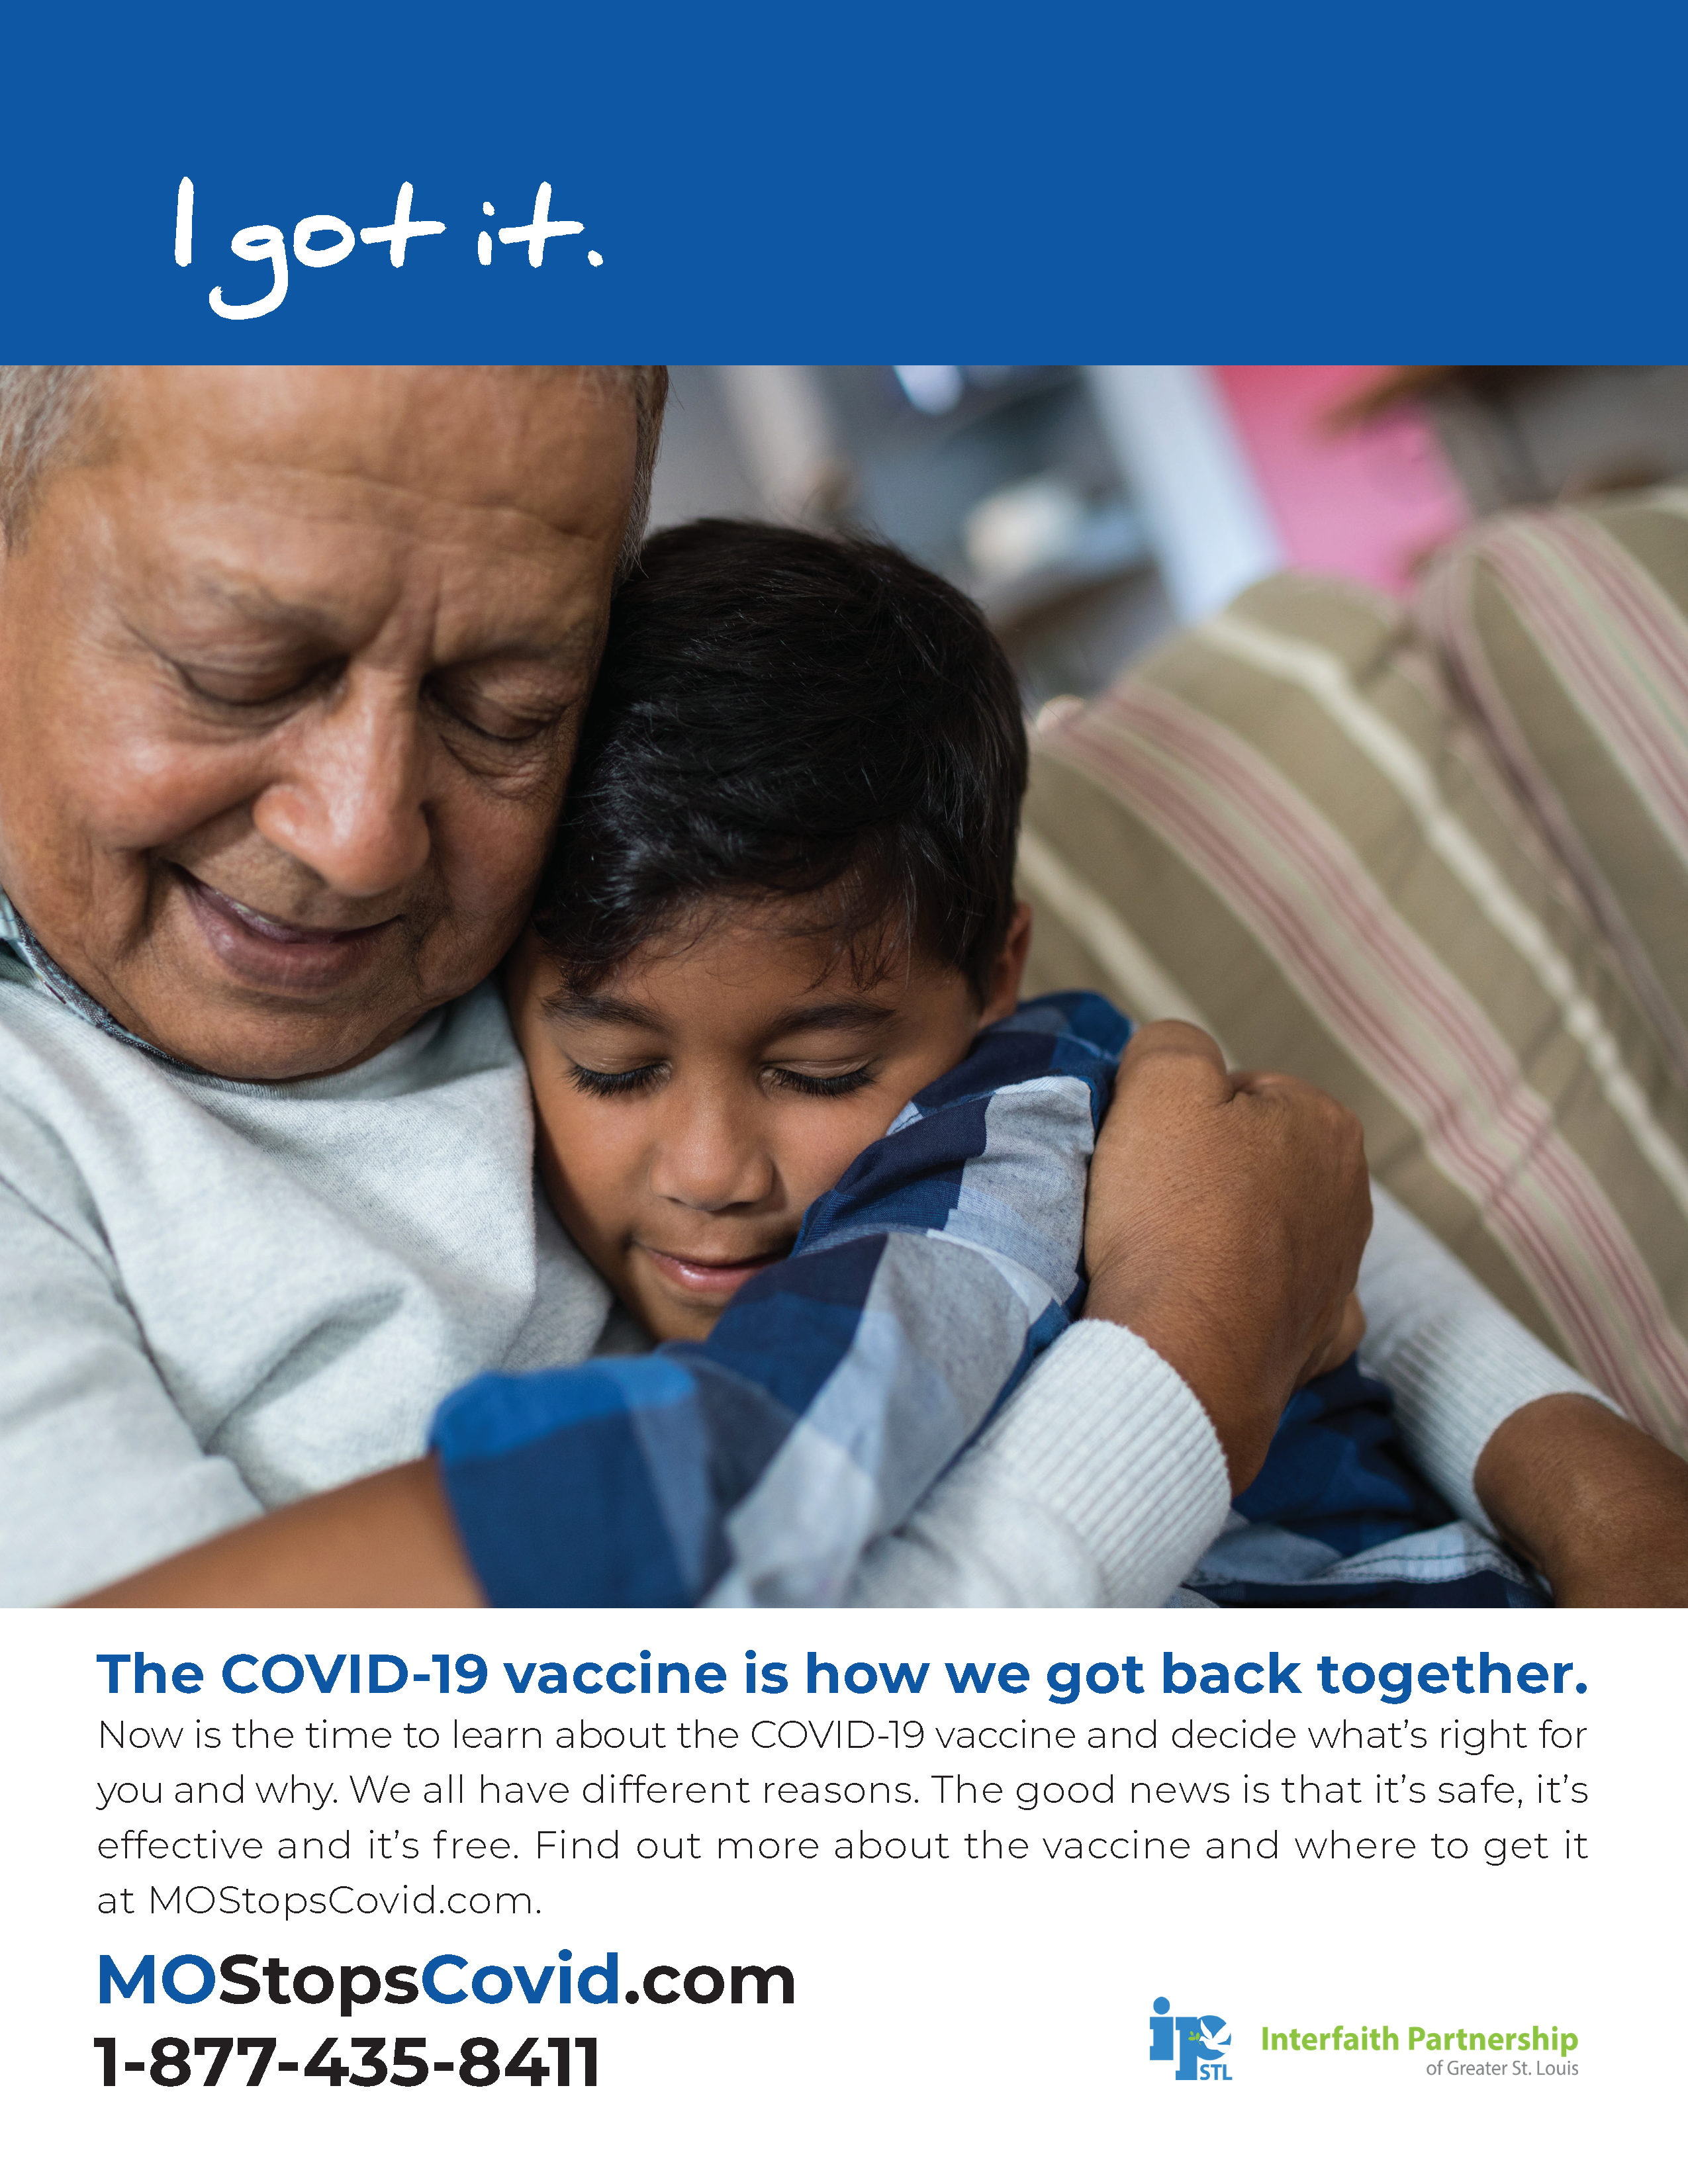 """Photograph of an older man hugging a young child. Above, the text reads """"I got it"""" over a blue border. Below, the text reads, """"The COVID-19 vaccine is how we got back together. Now is the time to learn about the COVID-19 vaccine and decide what's right for you and why. We all have different reasons. The good news is that it's safe, it's effective and it's free. FInd out more about the vaccine and where to get it at MOStopsCovid.com or by calling 1-877-435-8411. Courtesy of Interfaith Partnership of Greater St. Louis"""